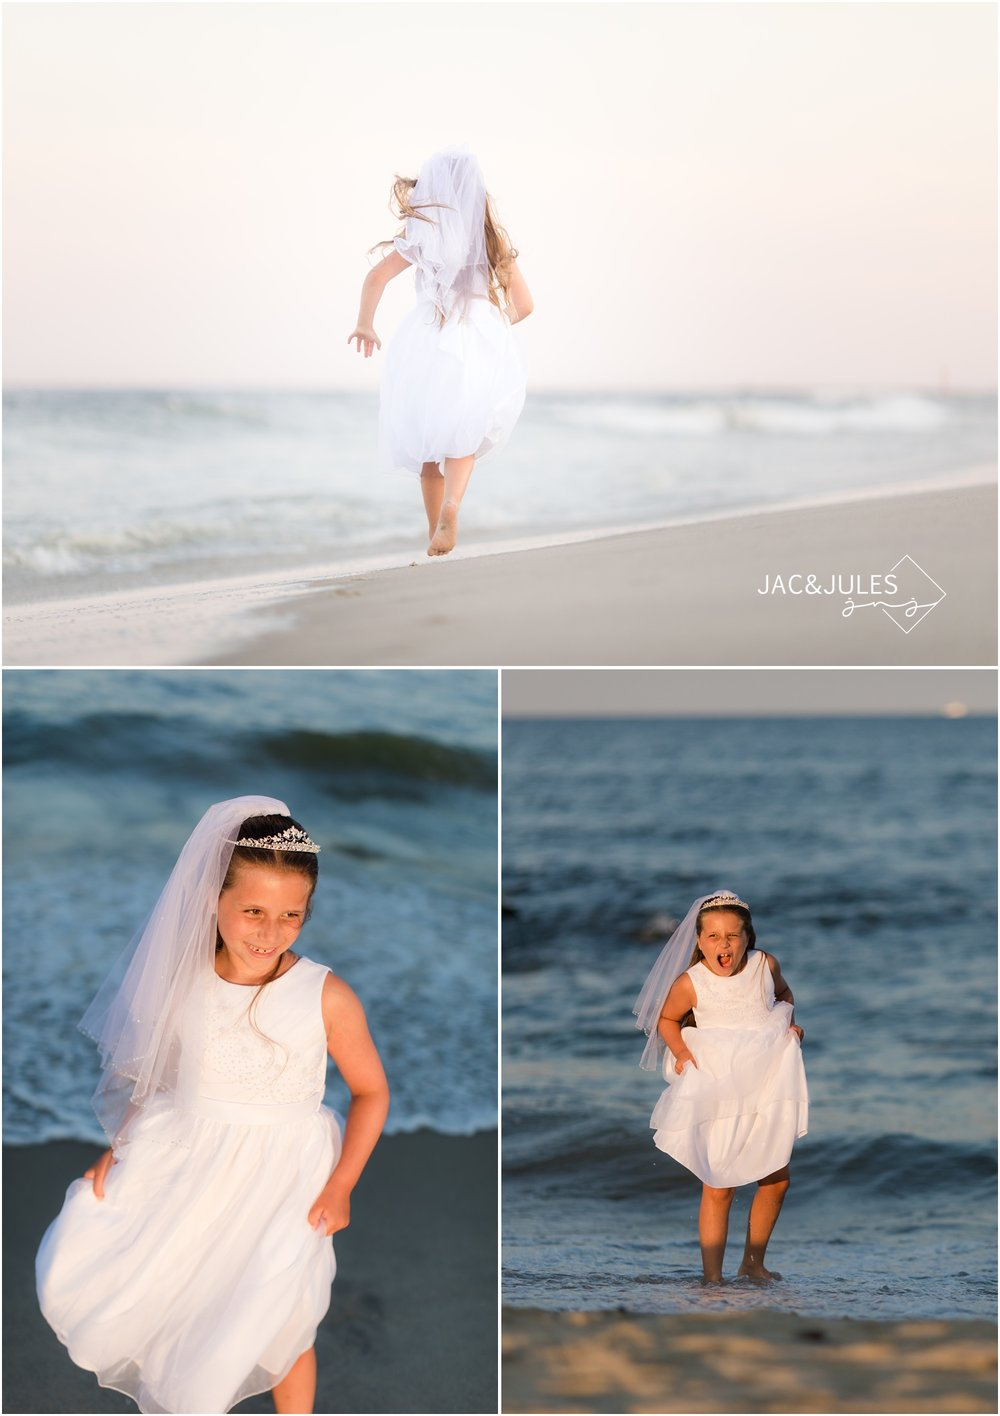 Communion photos on the beach in Spring Lake, NJ.